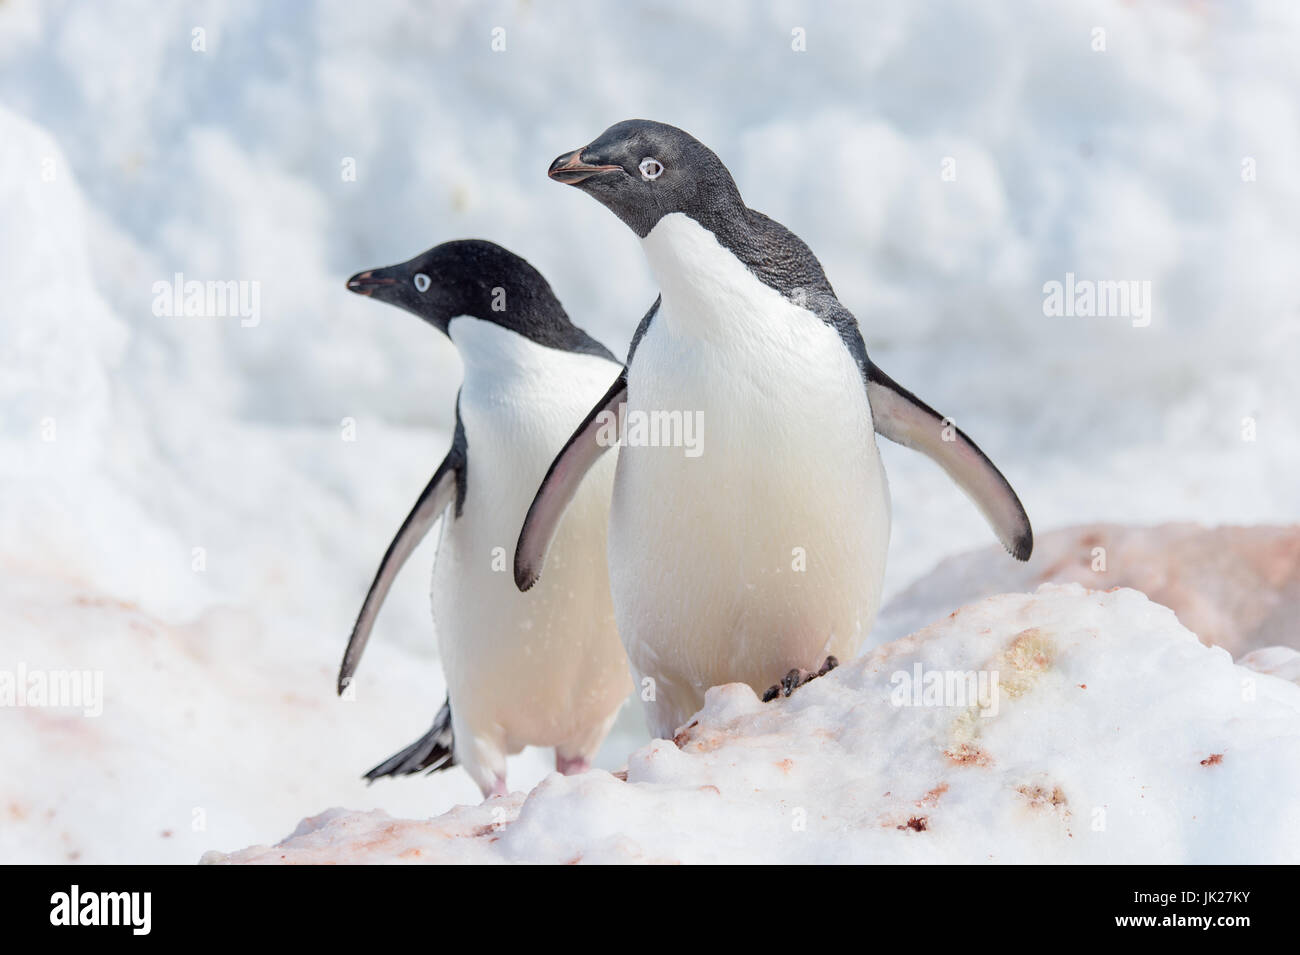 A pair of Adelie penguins looking at the camera in Antarctica - Stock Image